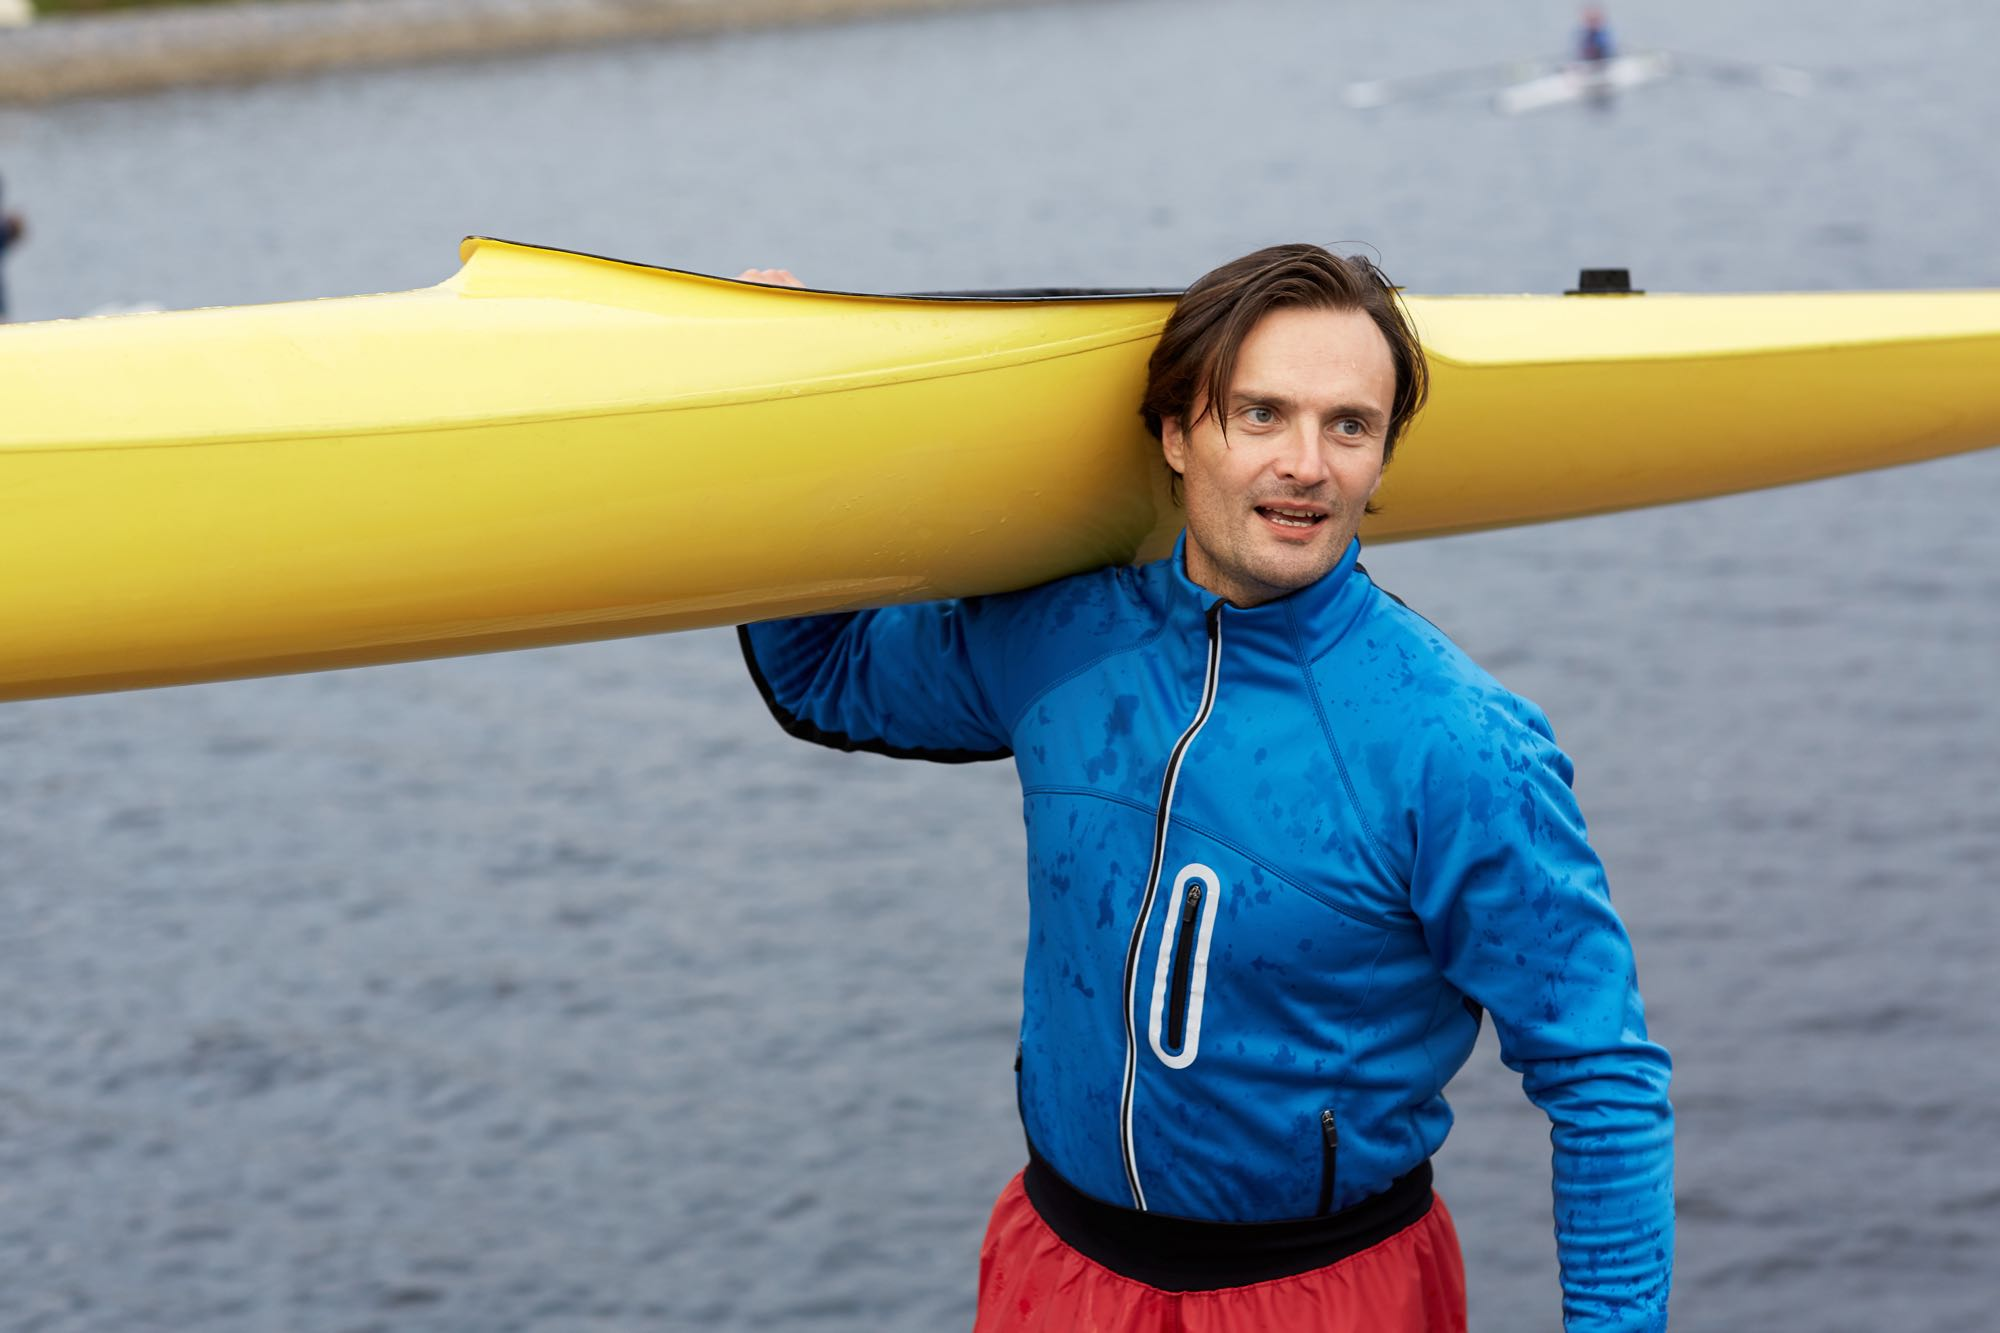 Why Kayaking Is Great for Your Health